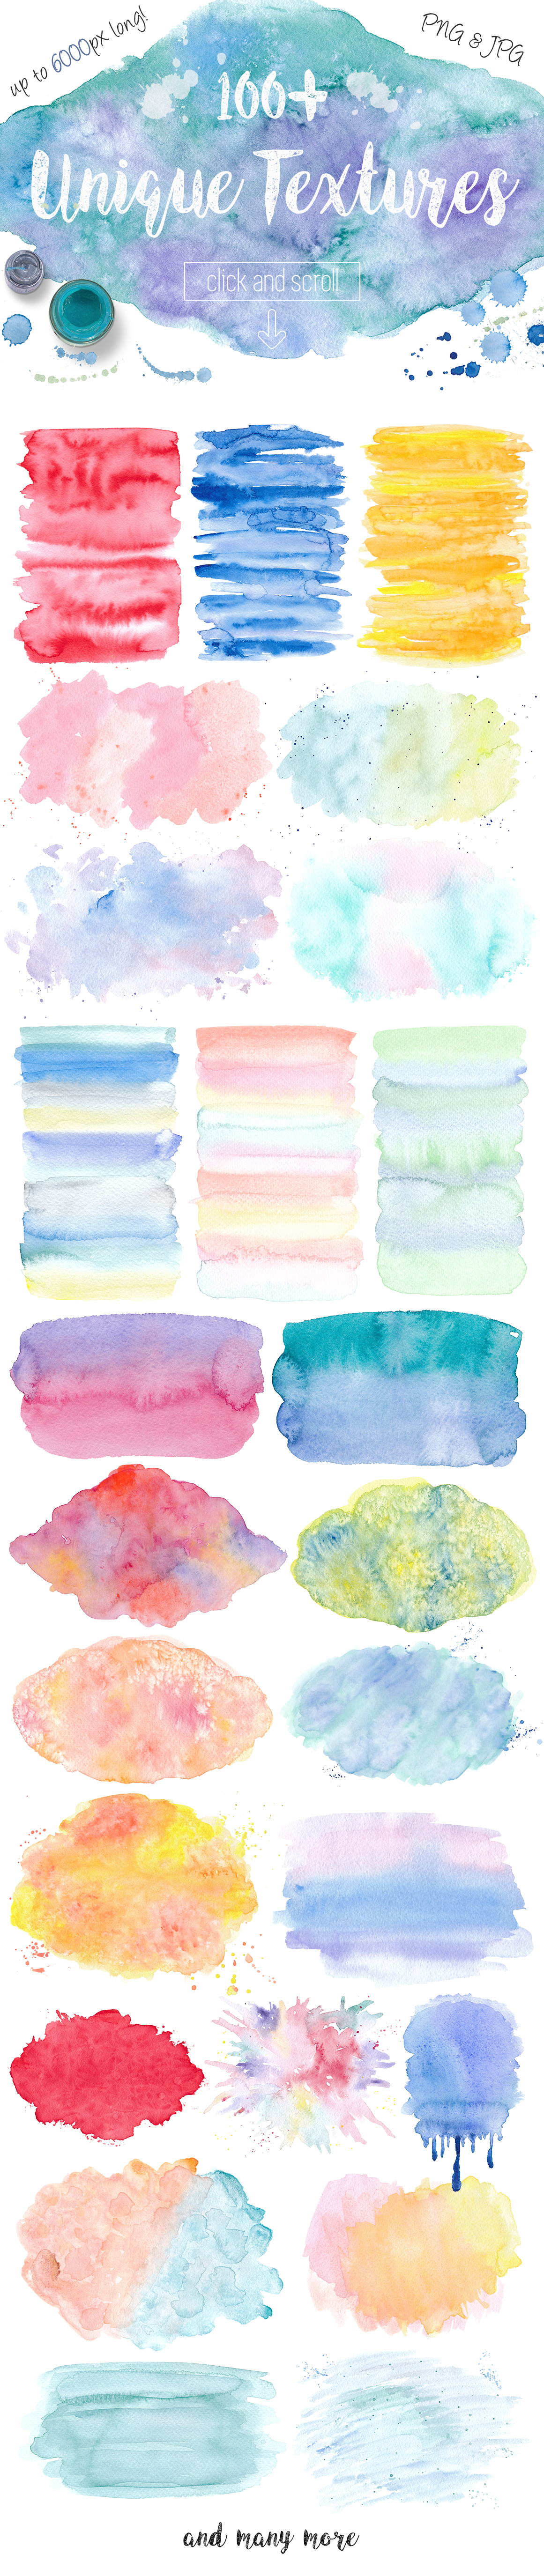 Watercolor Textures. Light & Bright example image 4